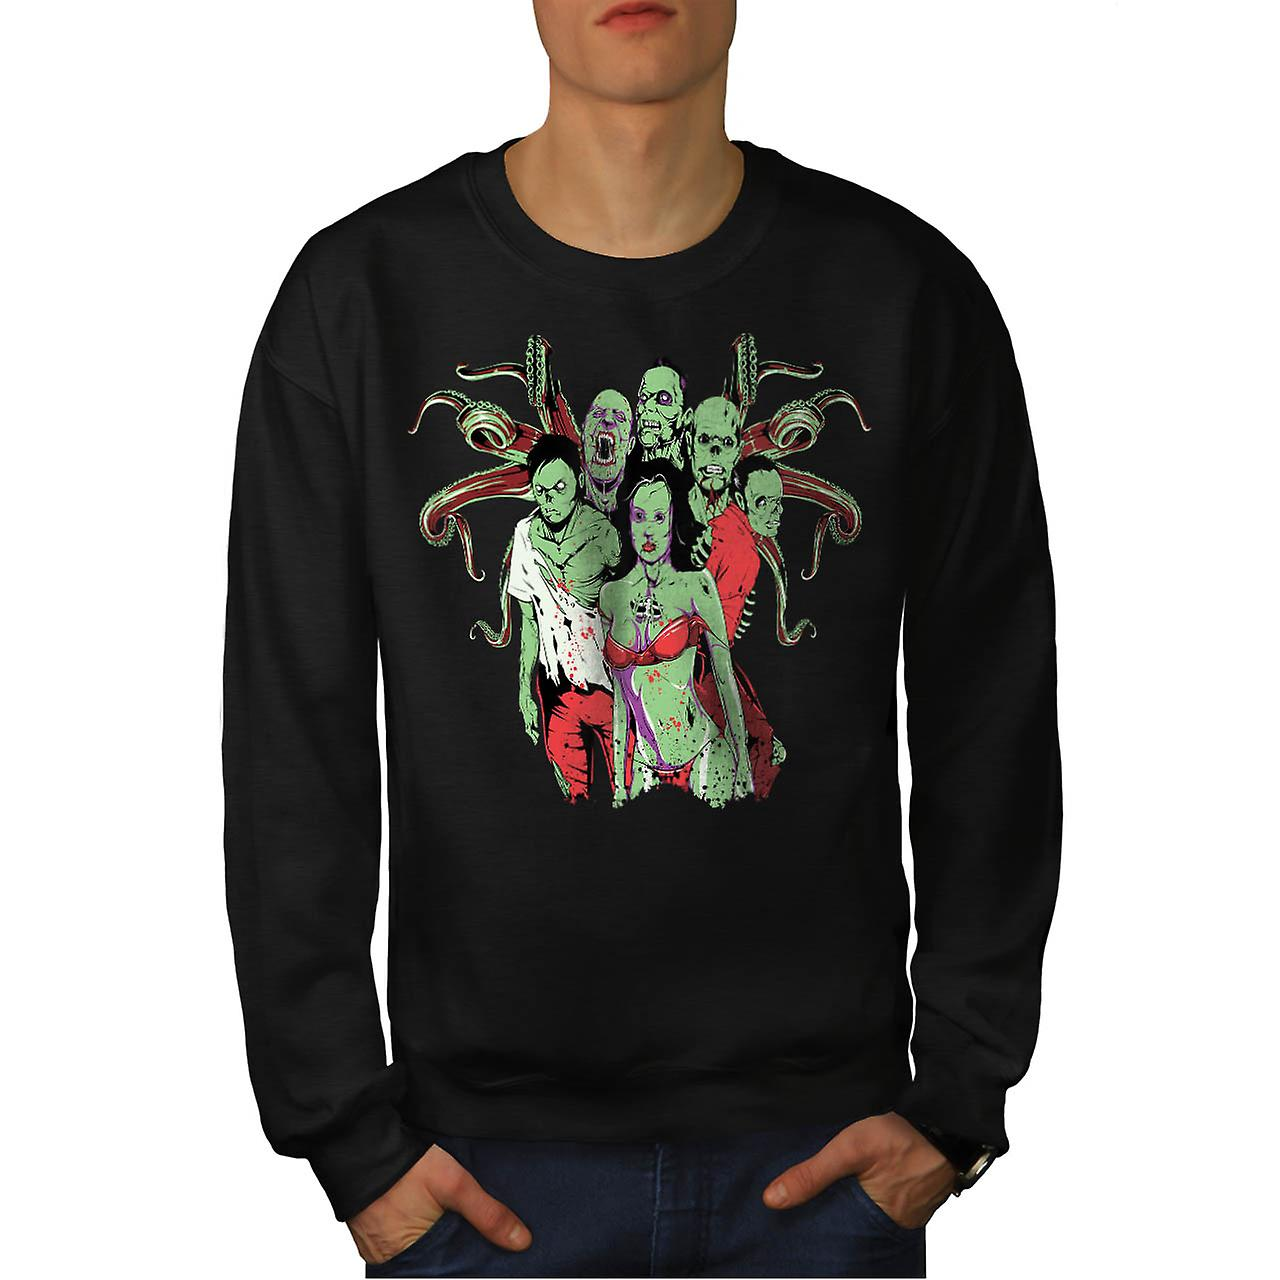 Crowd Gang Dead Zombie Men Black Sweatshirt | Wellcoda